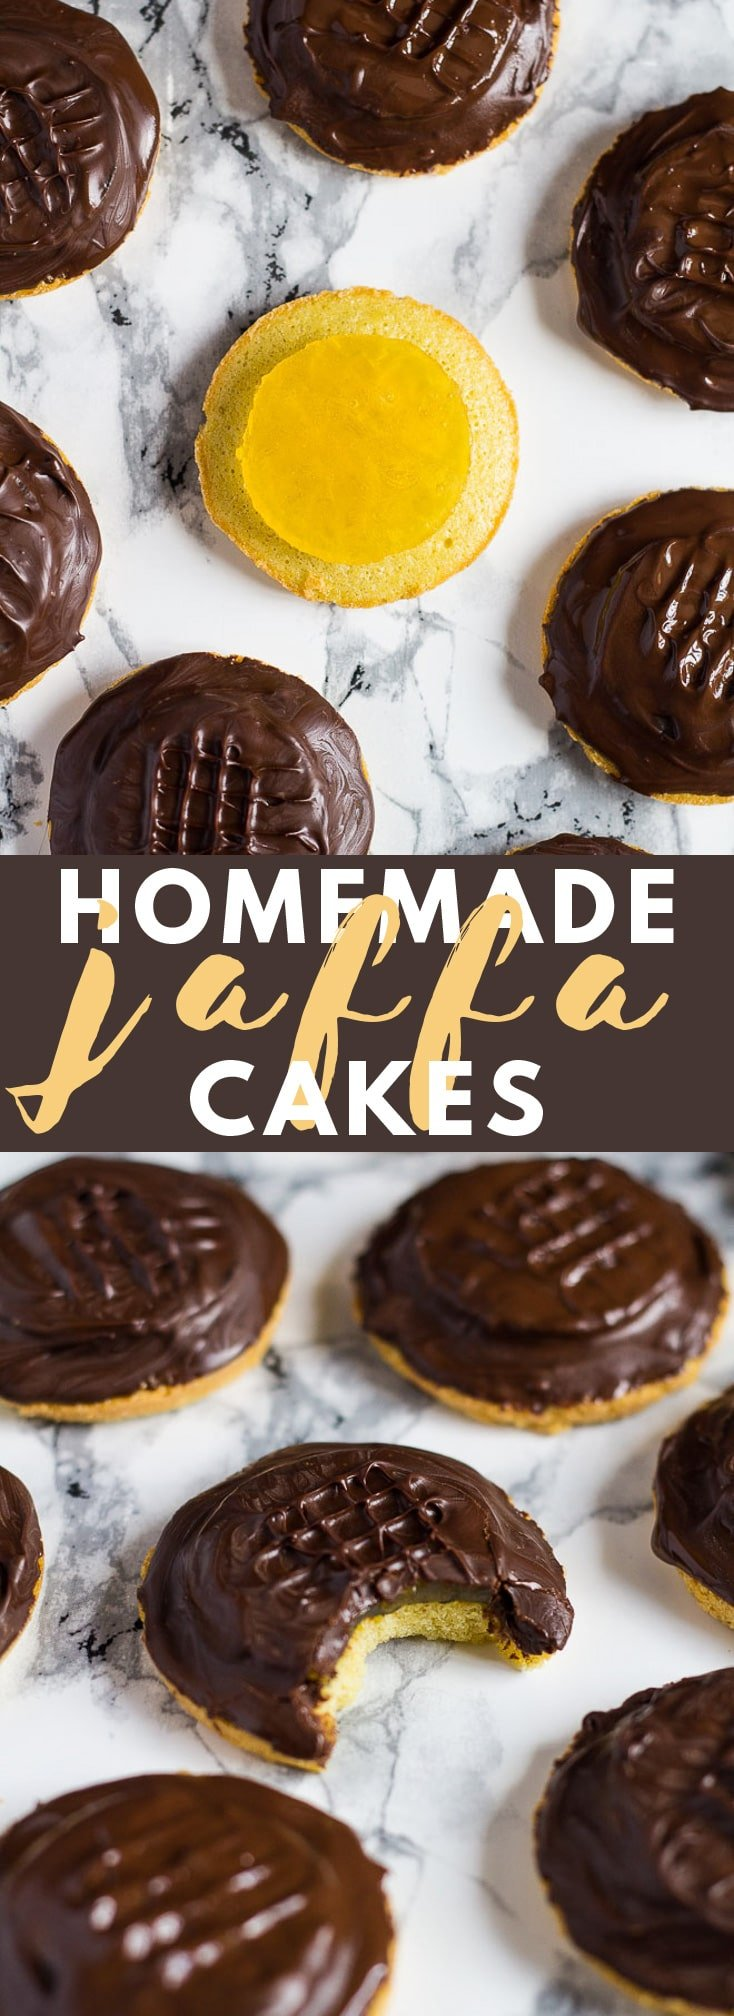 Homemade Jaffa Cakes – A British classic. Biscuit sized cakes topped with an orange jelly and sealed with dark chocolate!